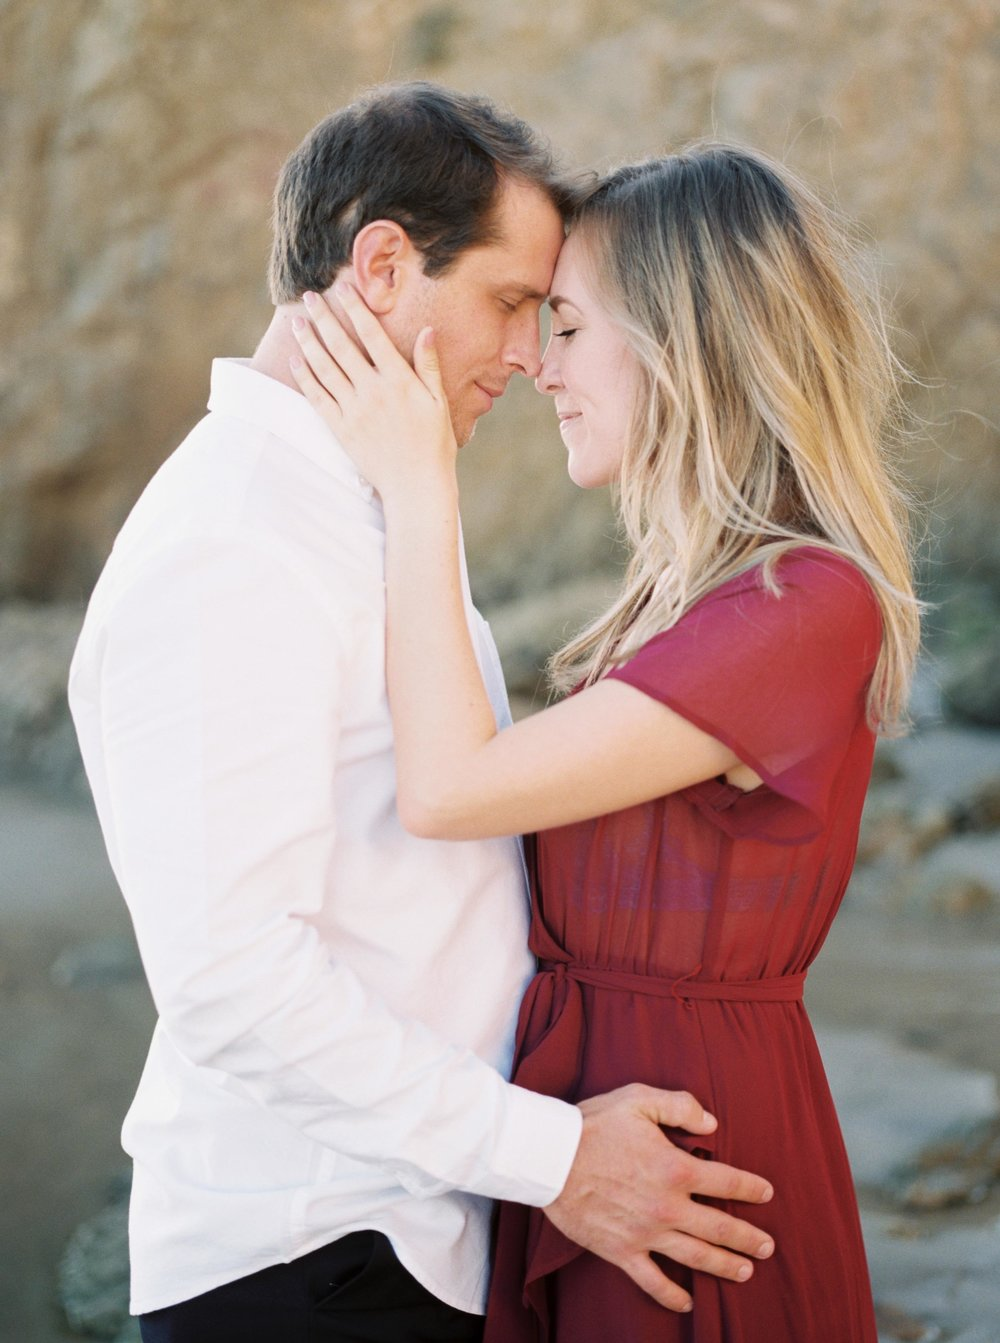 ELMATADOR_FUJI400H_MALIBU_LOSANGELES_PHOTOGRAPHER_WEDDING_ENGAGEMENT_STYLEMEPRETTY_FILM_BEACH_SOCAL_KATELROSEPHOTOGRAPHY_001.jpg